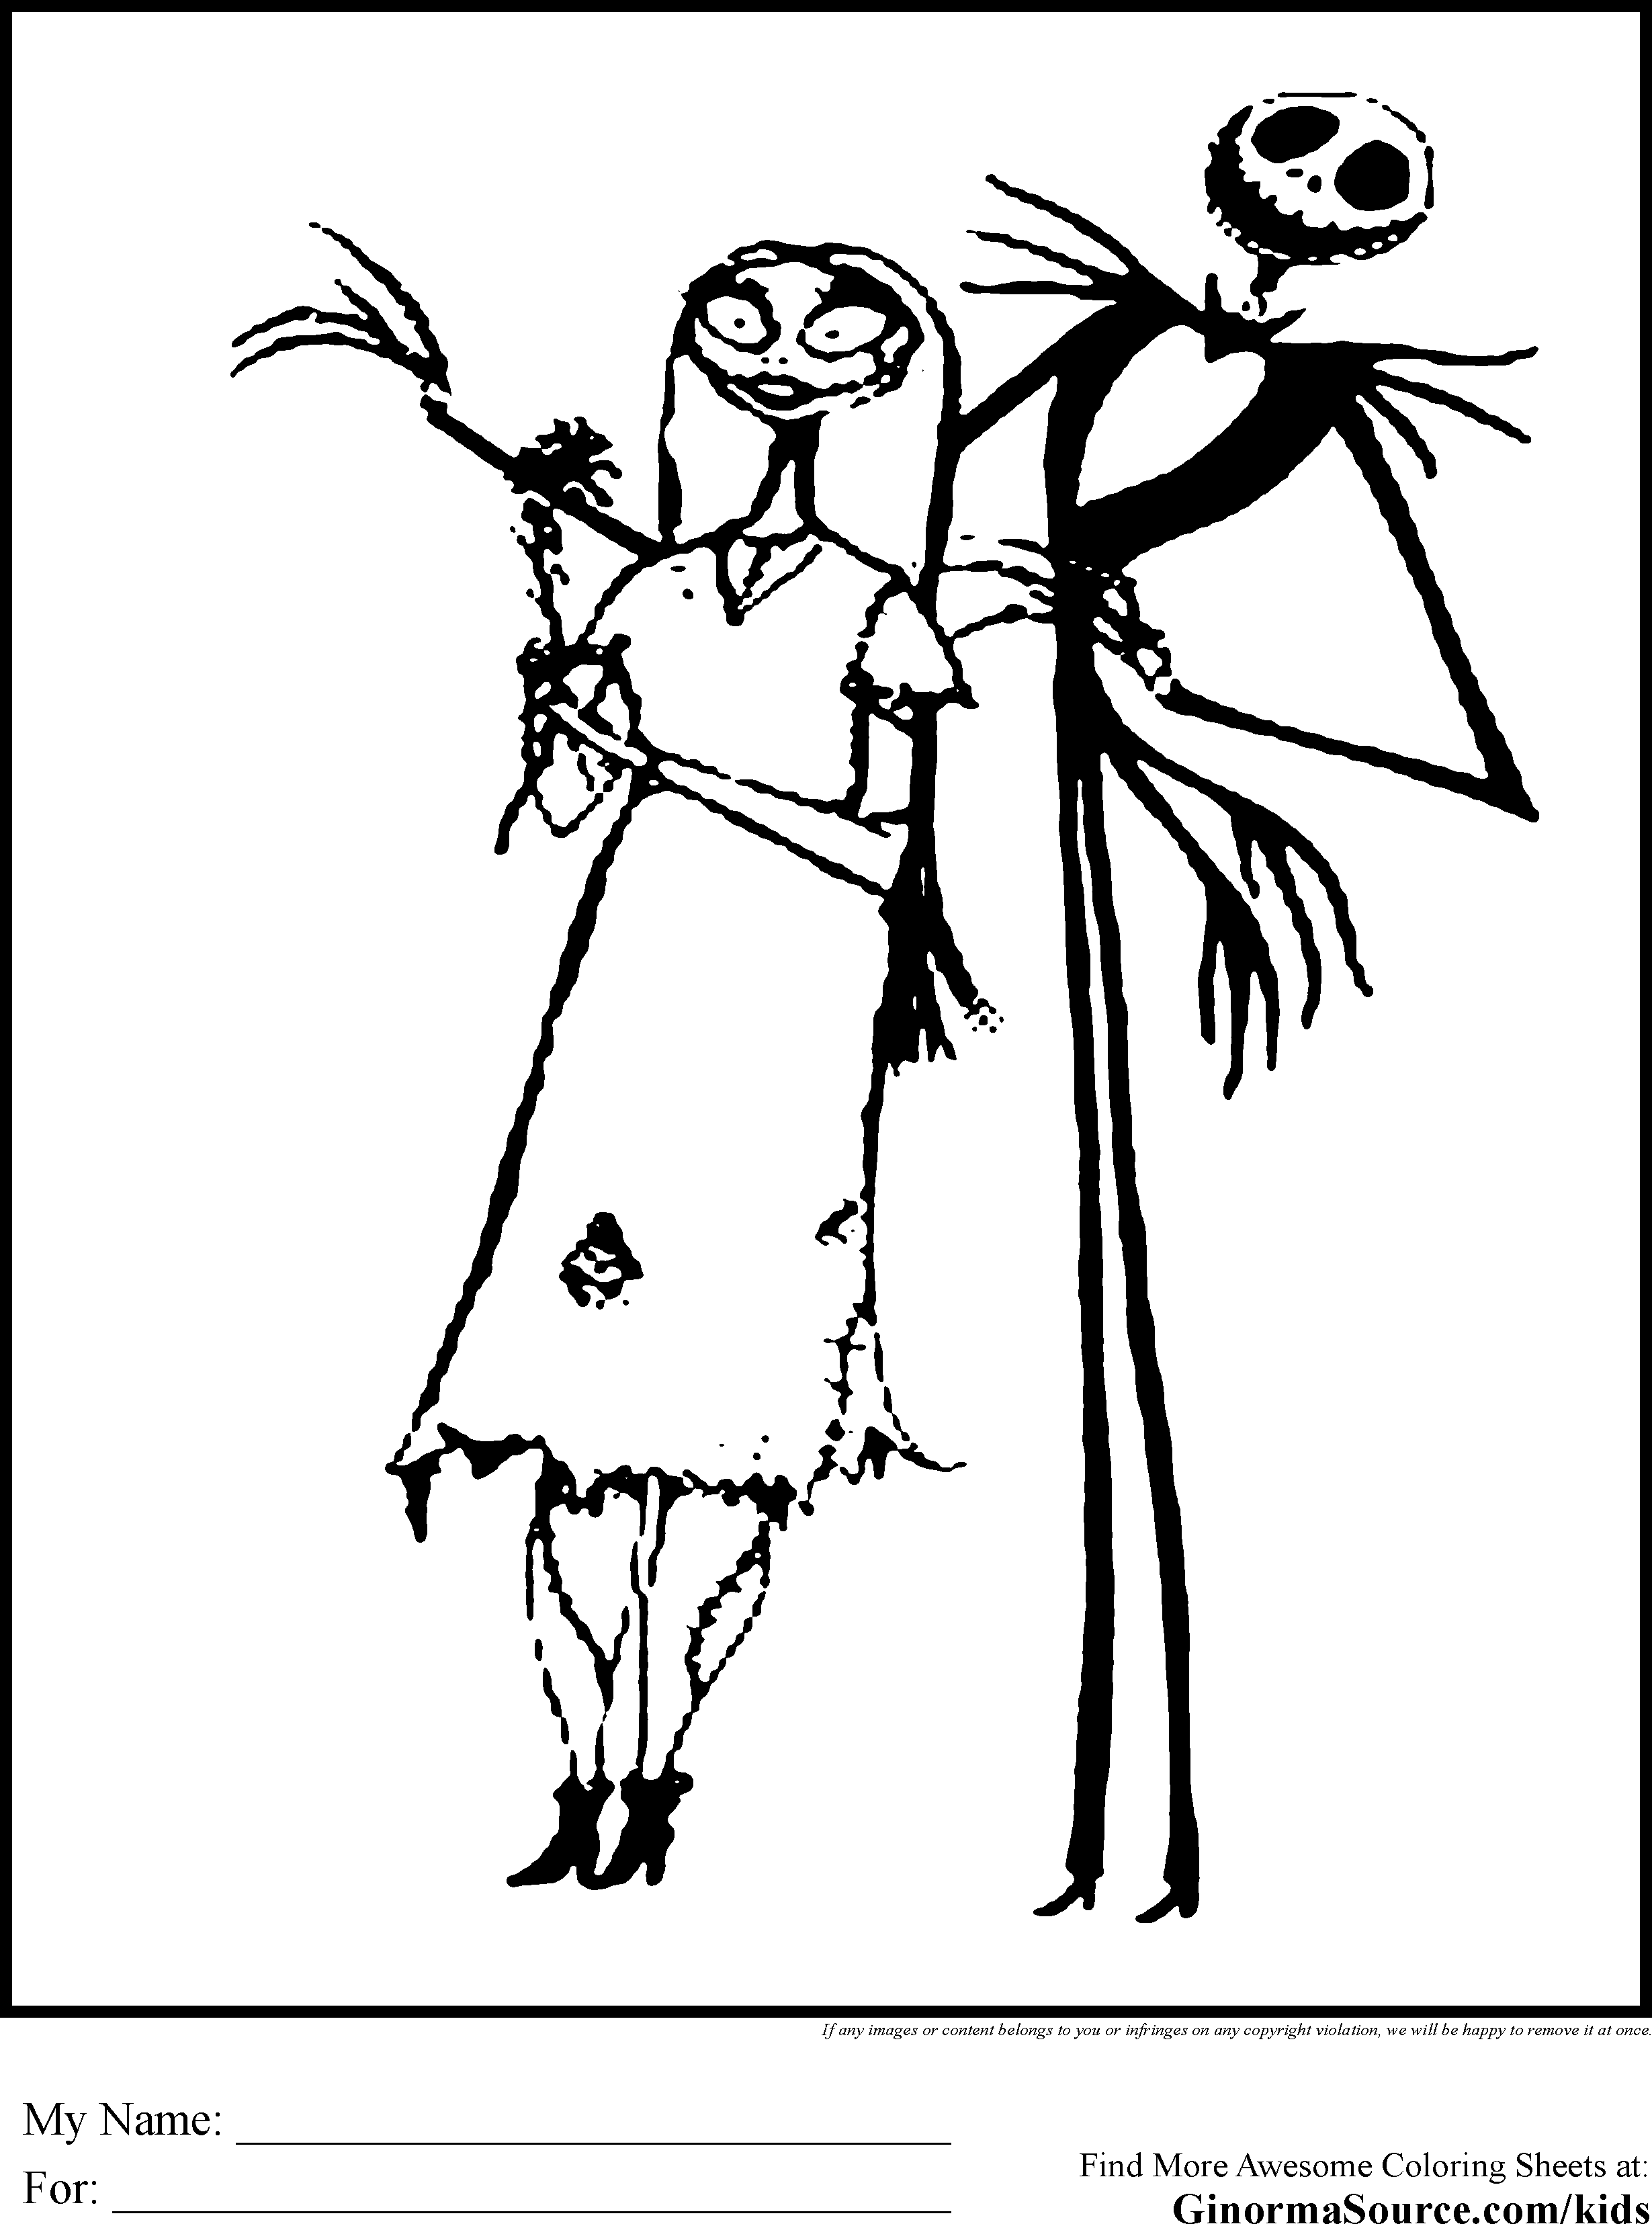 Jack skellington colouring pages page 2 - Boogie Man Nightmare Before Christmas Coloring Pages Coloring Boogie Man Nightmare Before Christmas Coloring Pages